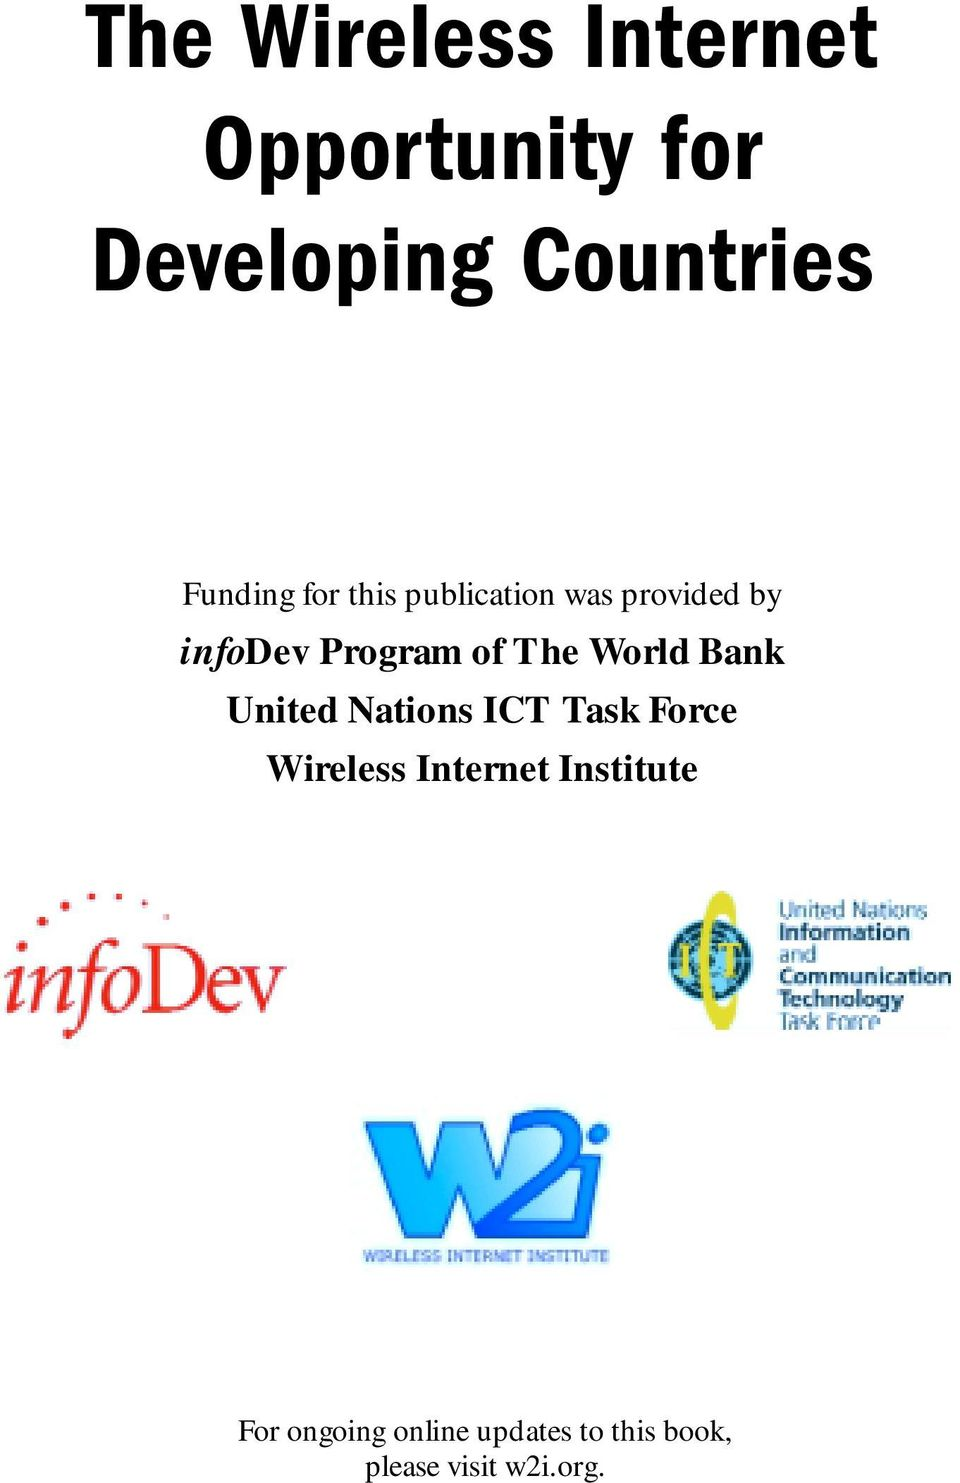 The World Bank United Nations ICT Task Force Wireless Internet